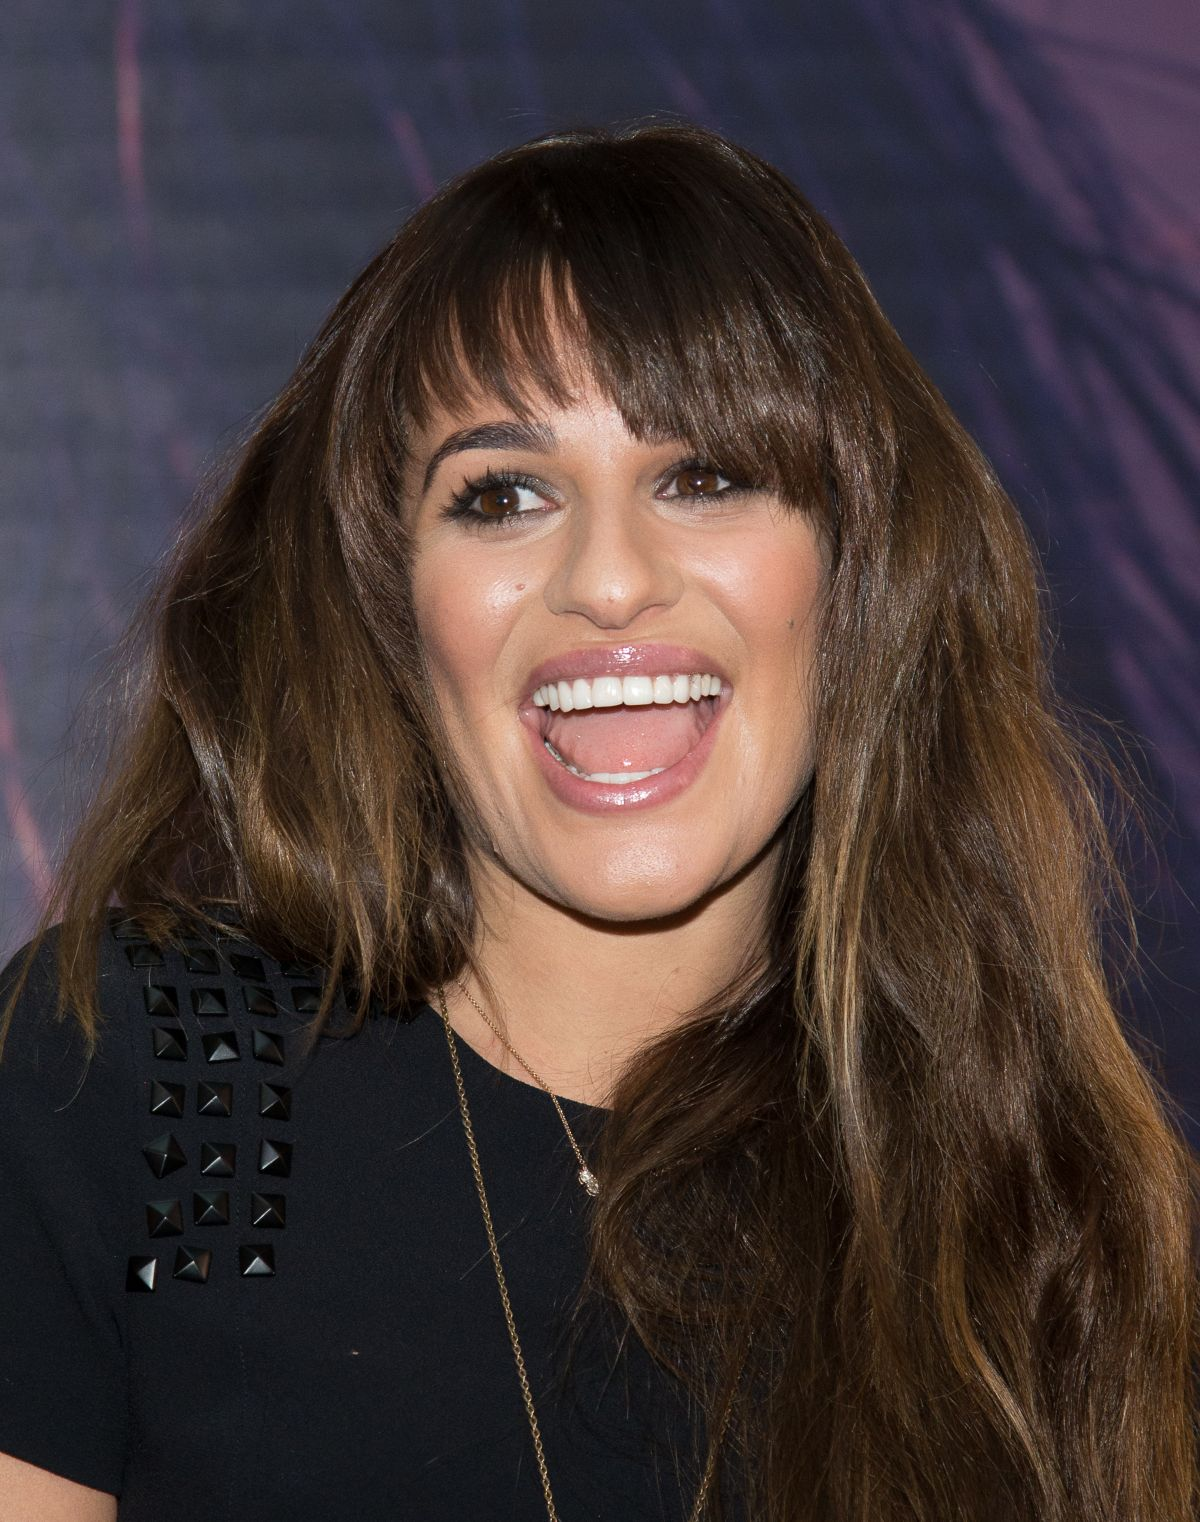 - lea-michele-at-her-album-louder-singing-event-in-new-jersey_4